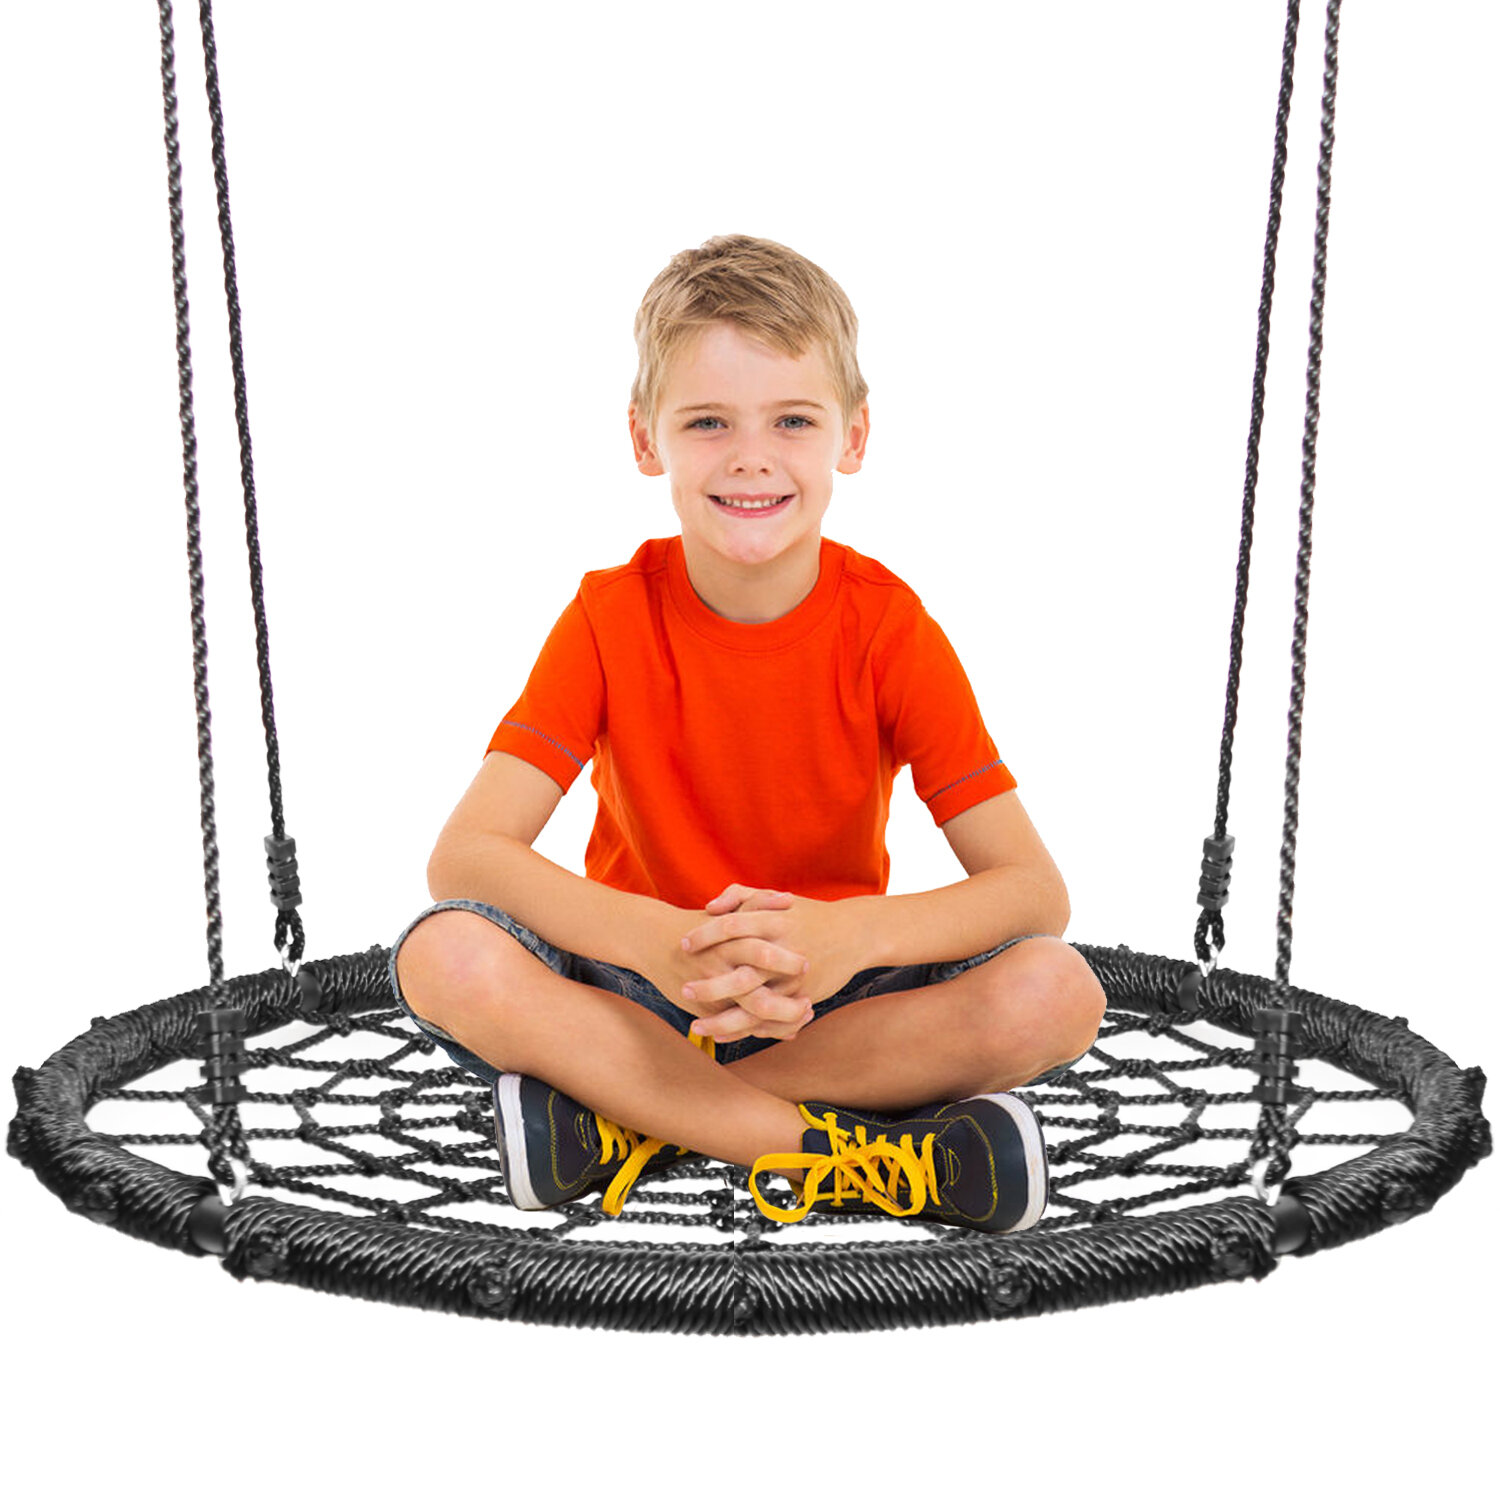 Khomogear Platform Swing Seat With Chains Reviews Wayfair